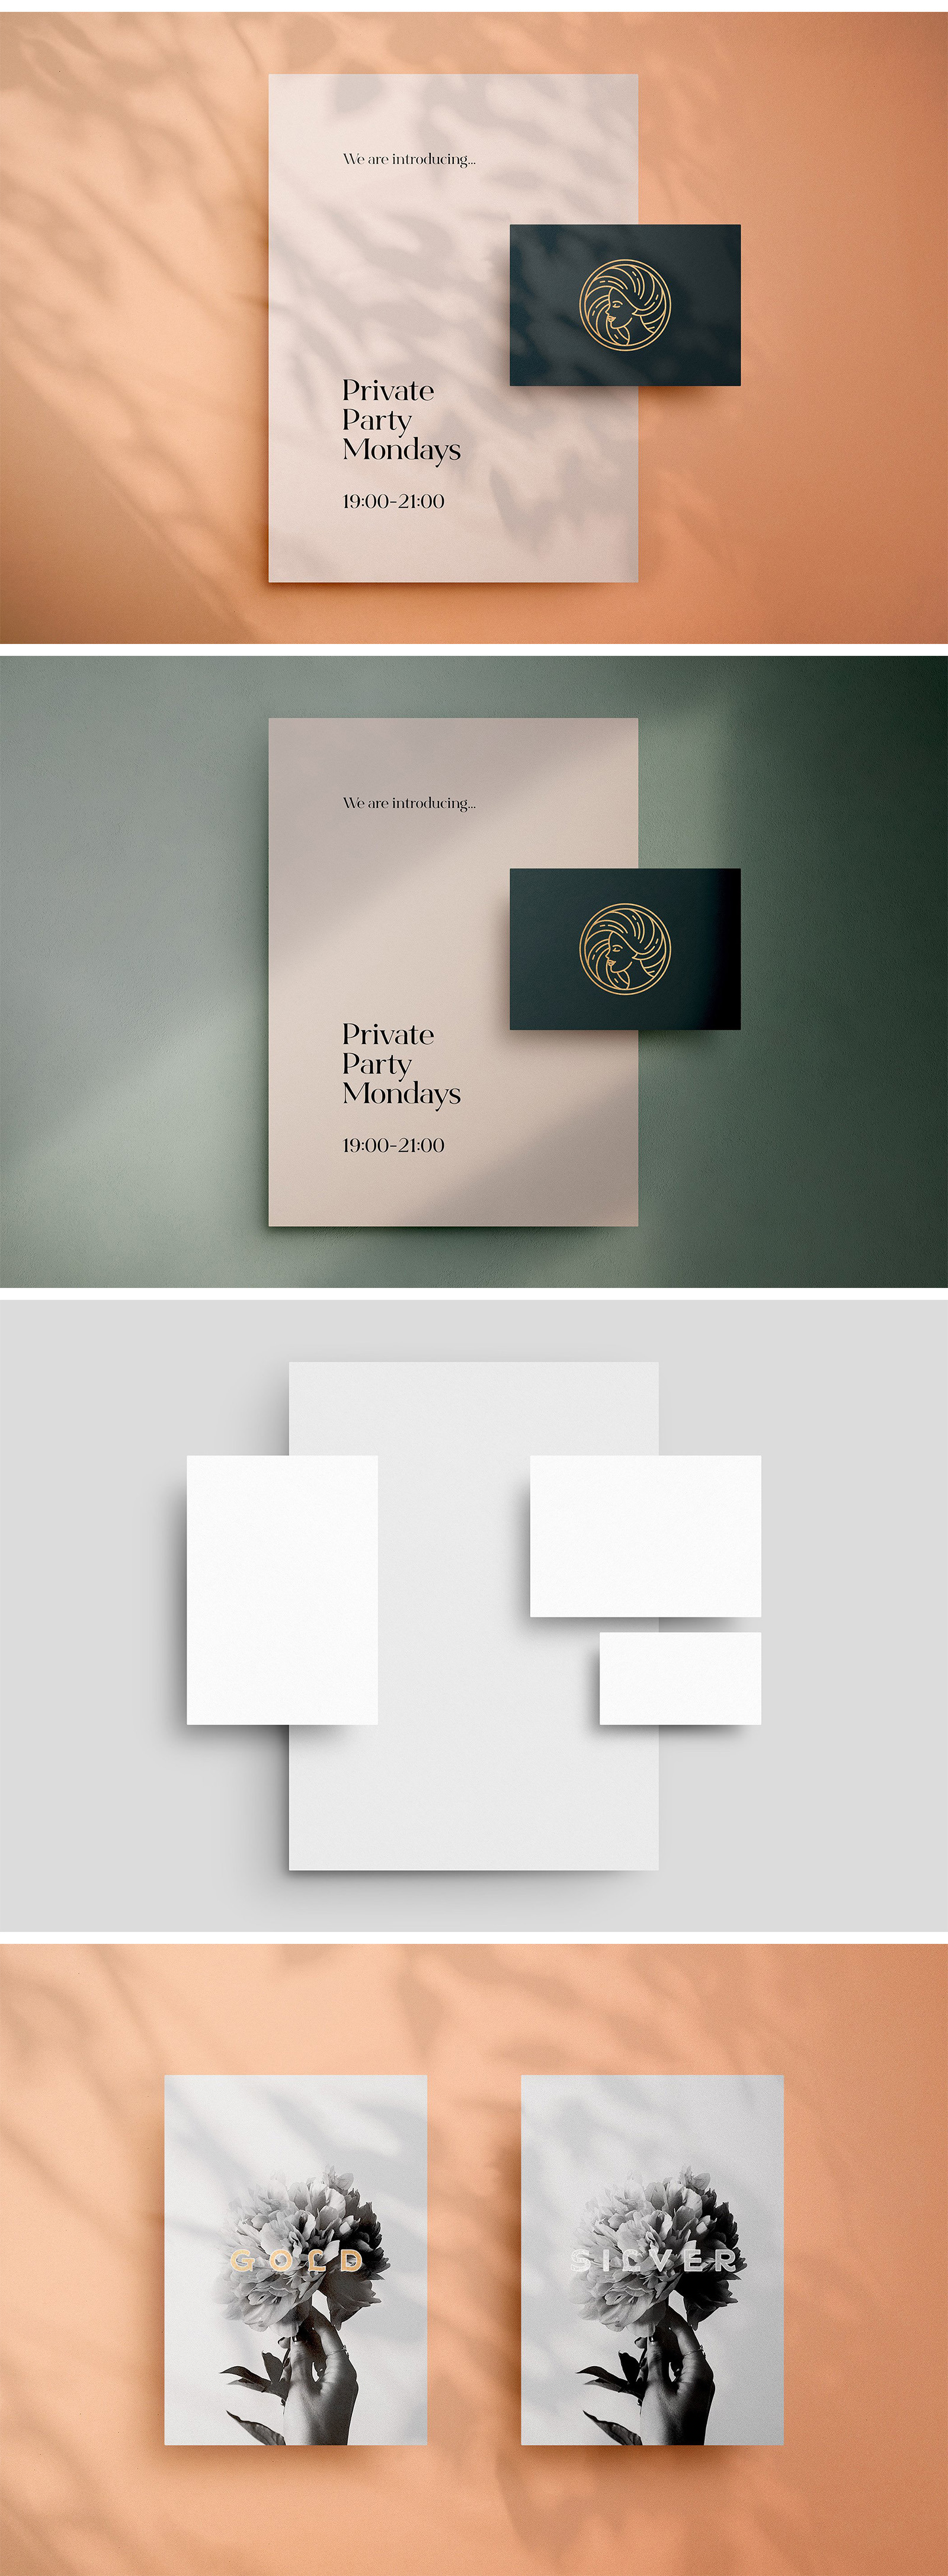 Download Flora Shadow Stationery Mockup In Stationery Mockups On Yellow Images Creative Store PSD Mockup Templates